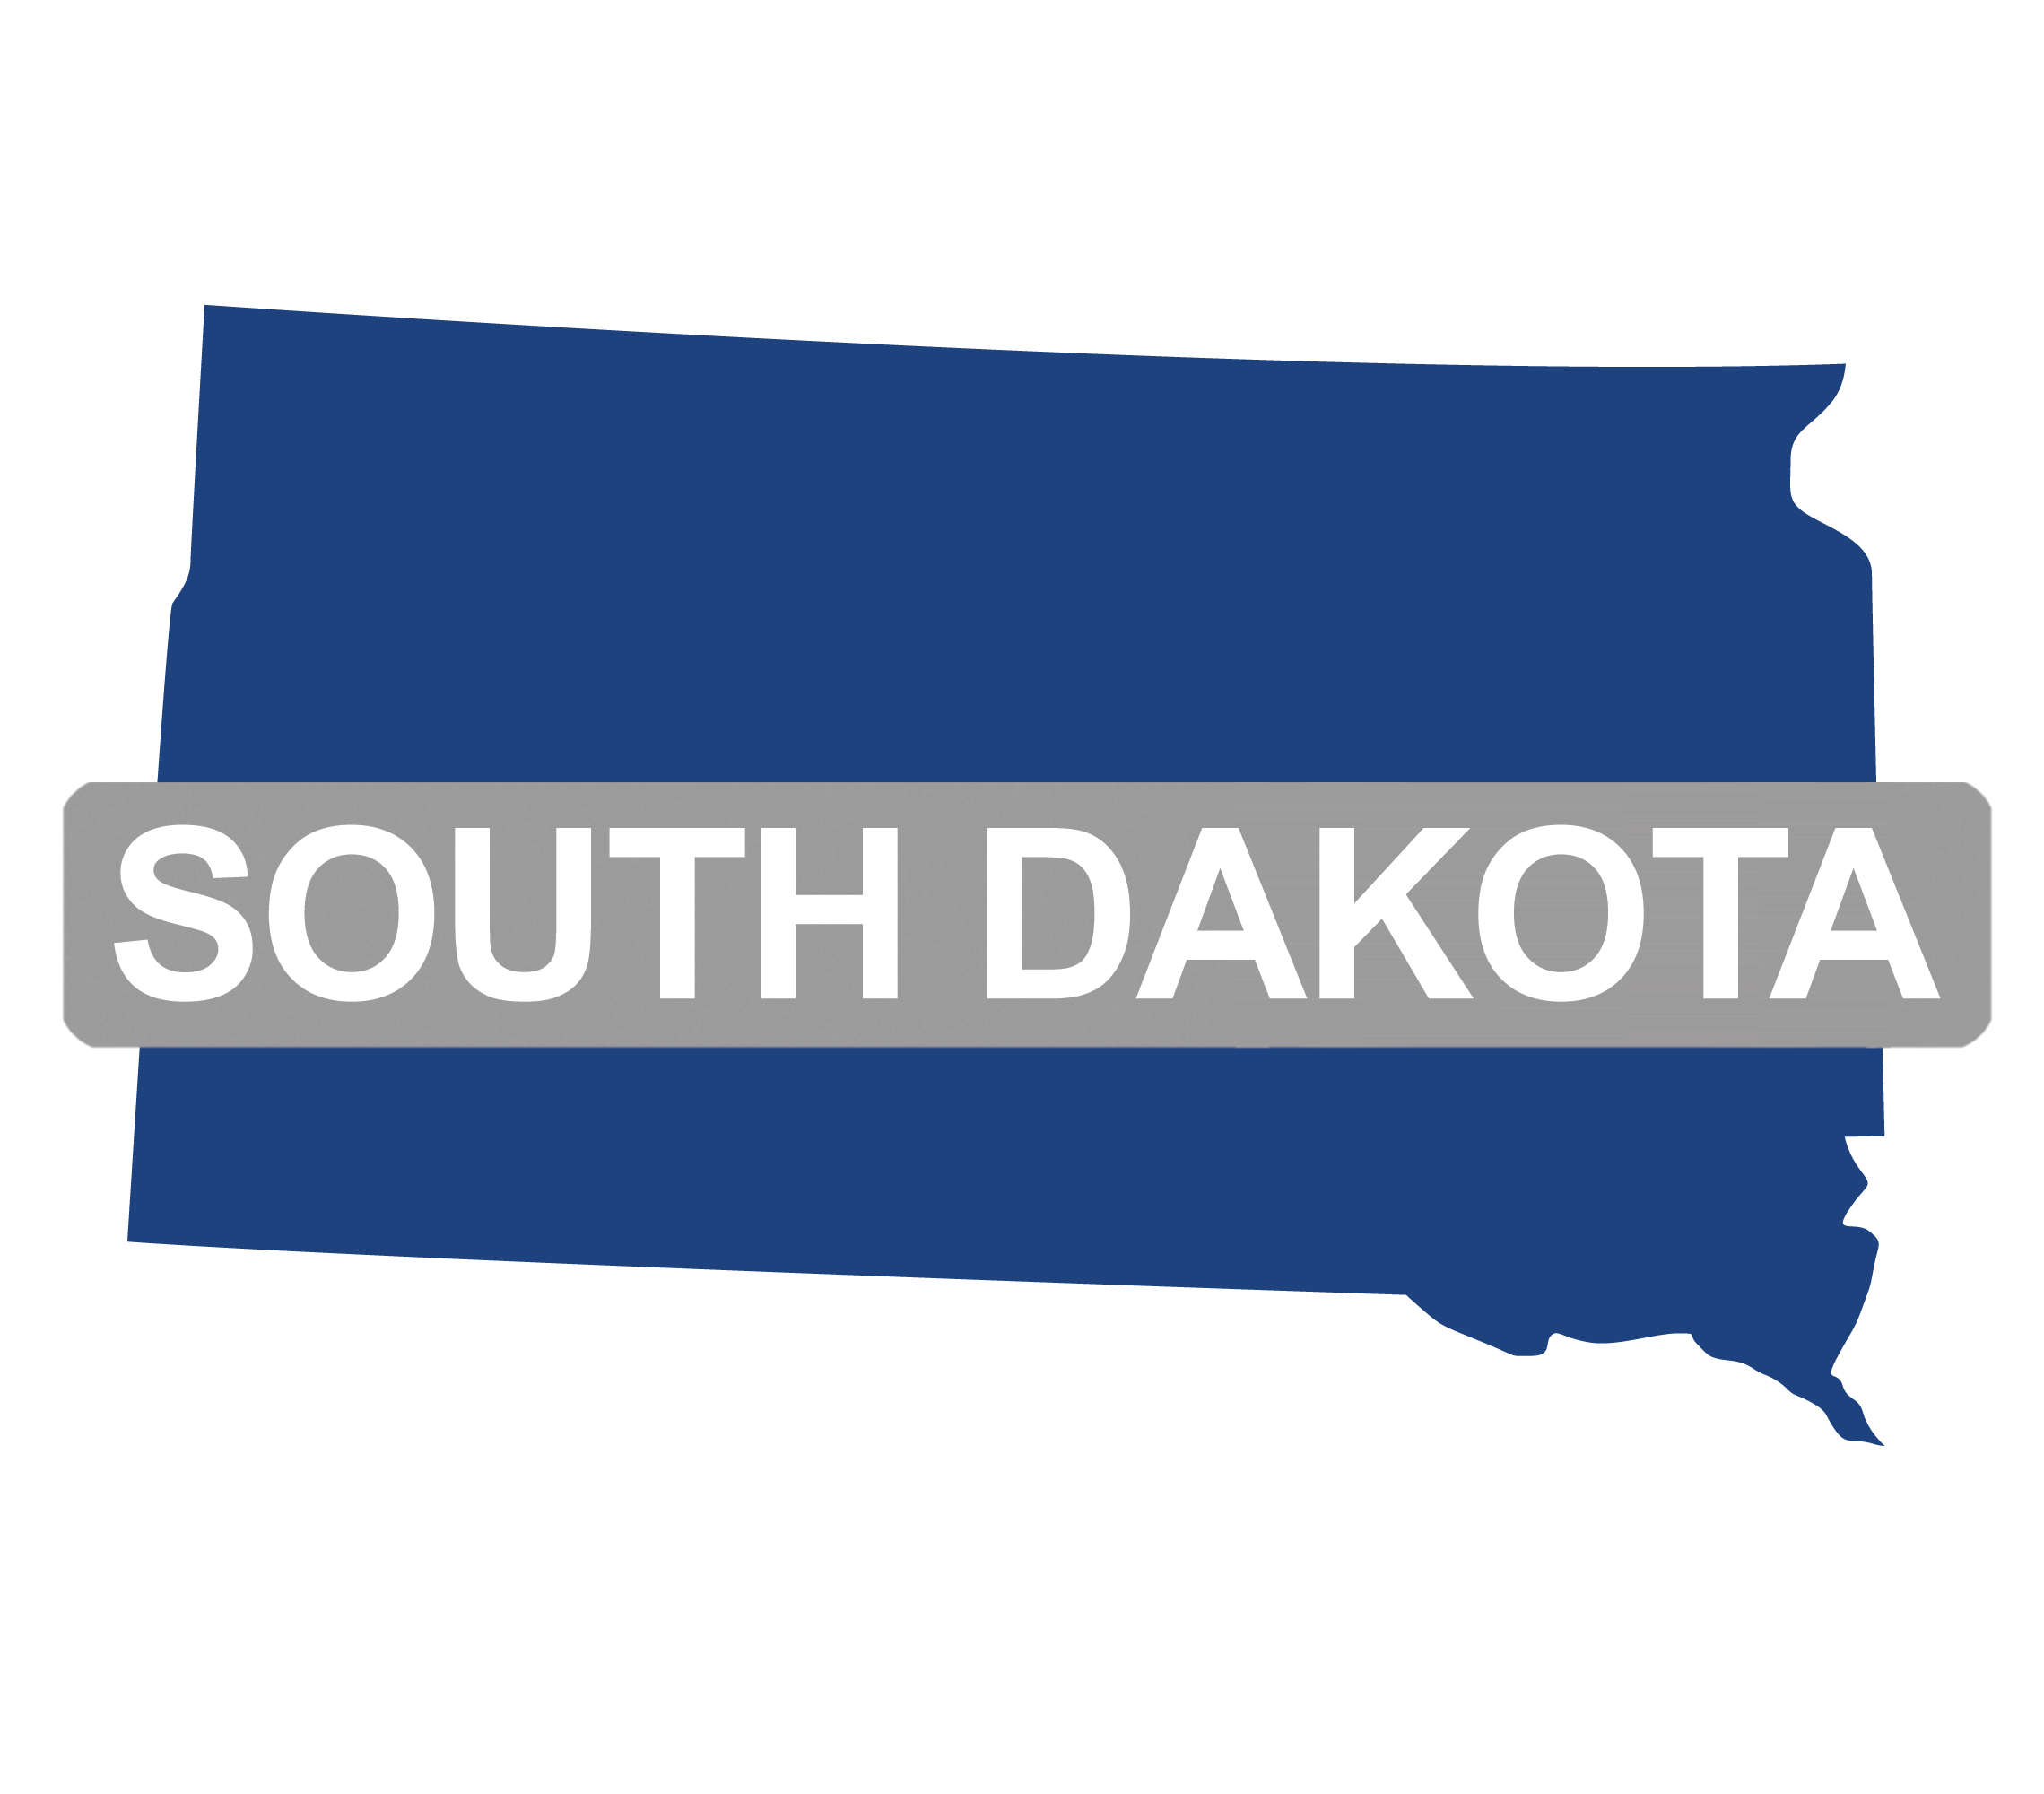 Best Places to Live in South Dakota | Livability